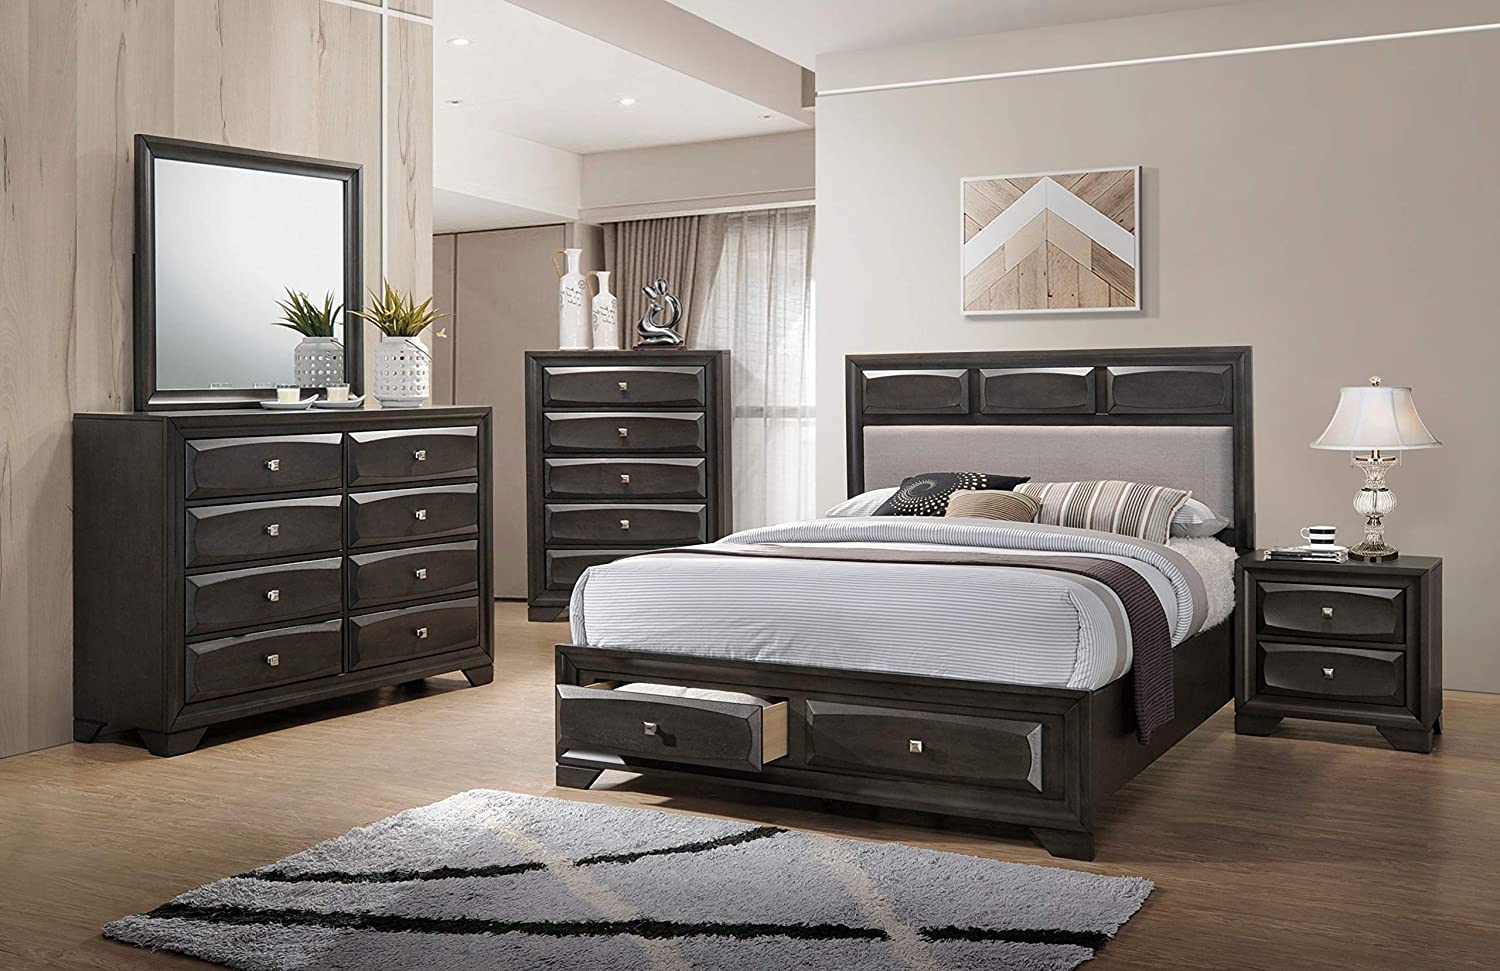 Amazon.com: Esofastore Classic Modern Master Bedroom Furniture ...